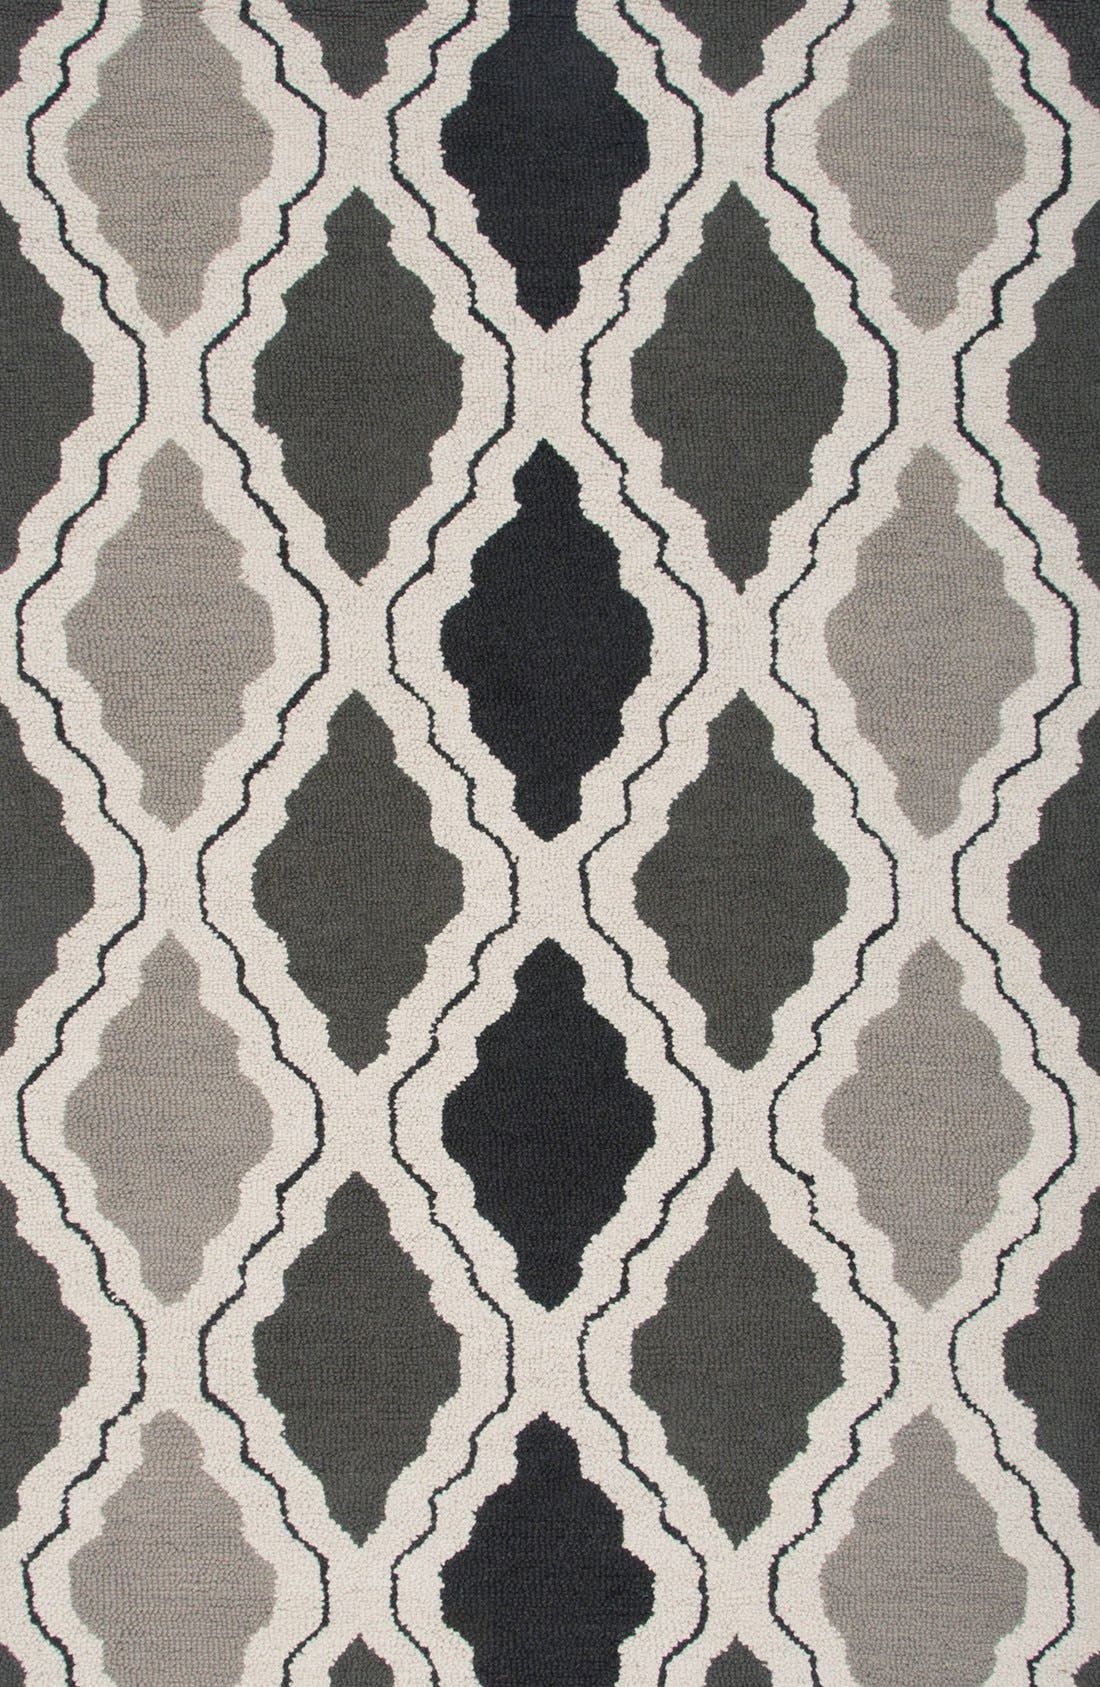 'Ogee' Wool Area Rug,                             Main thumbnail 1, color,                             030